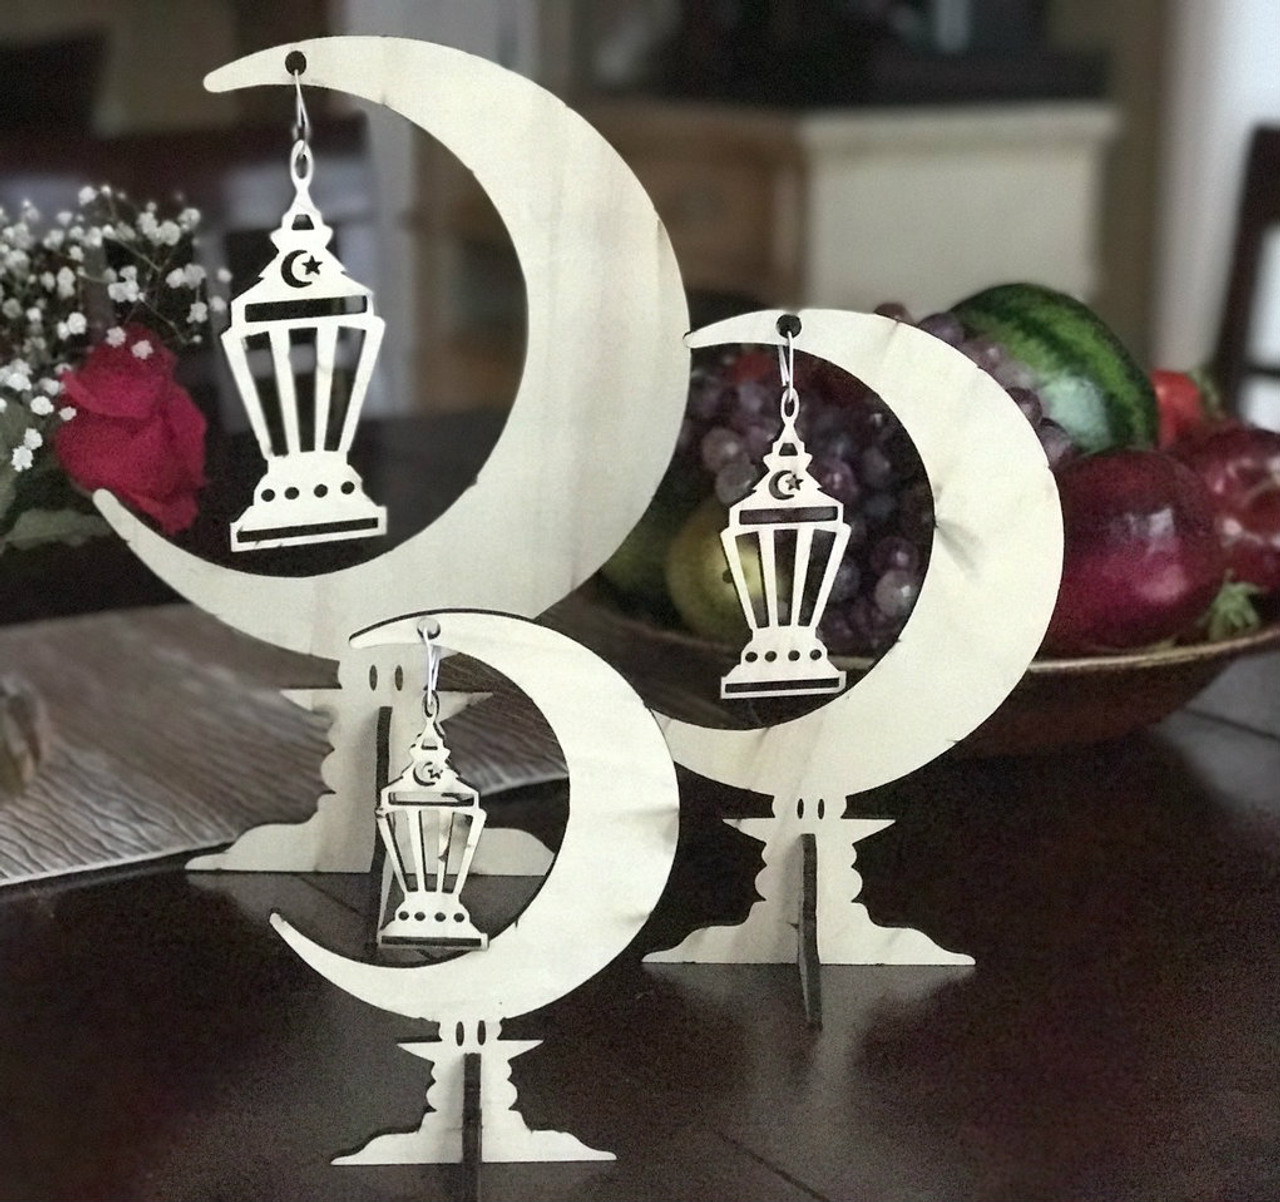 Three Moon Center Pieces Stand